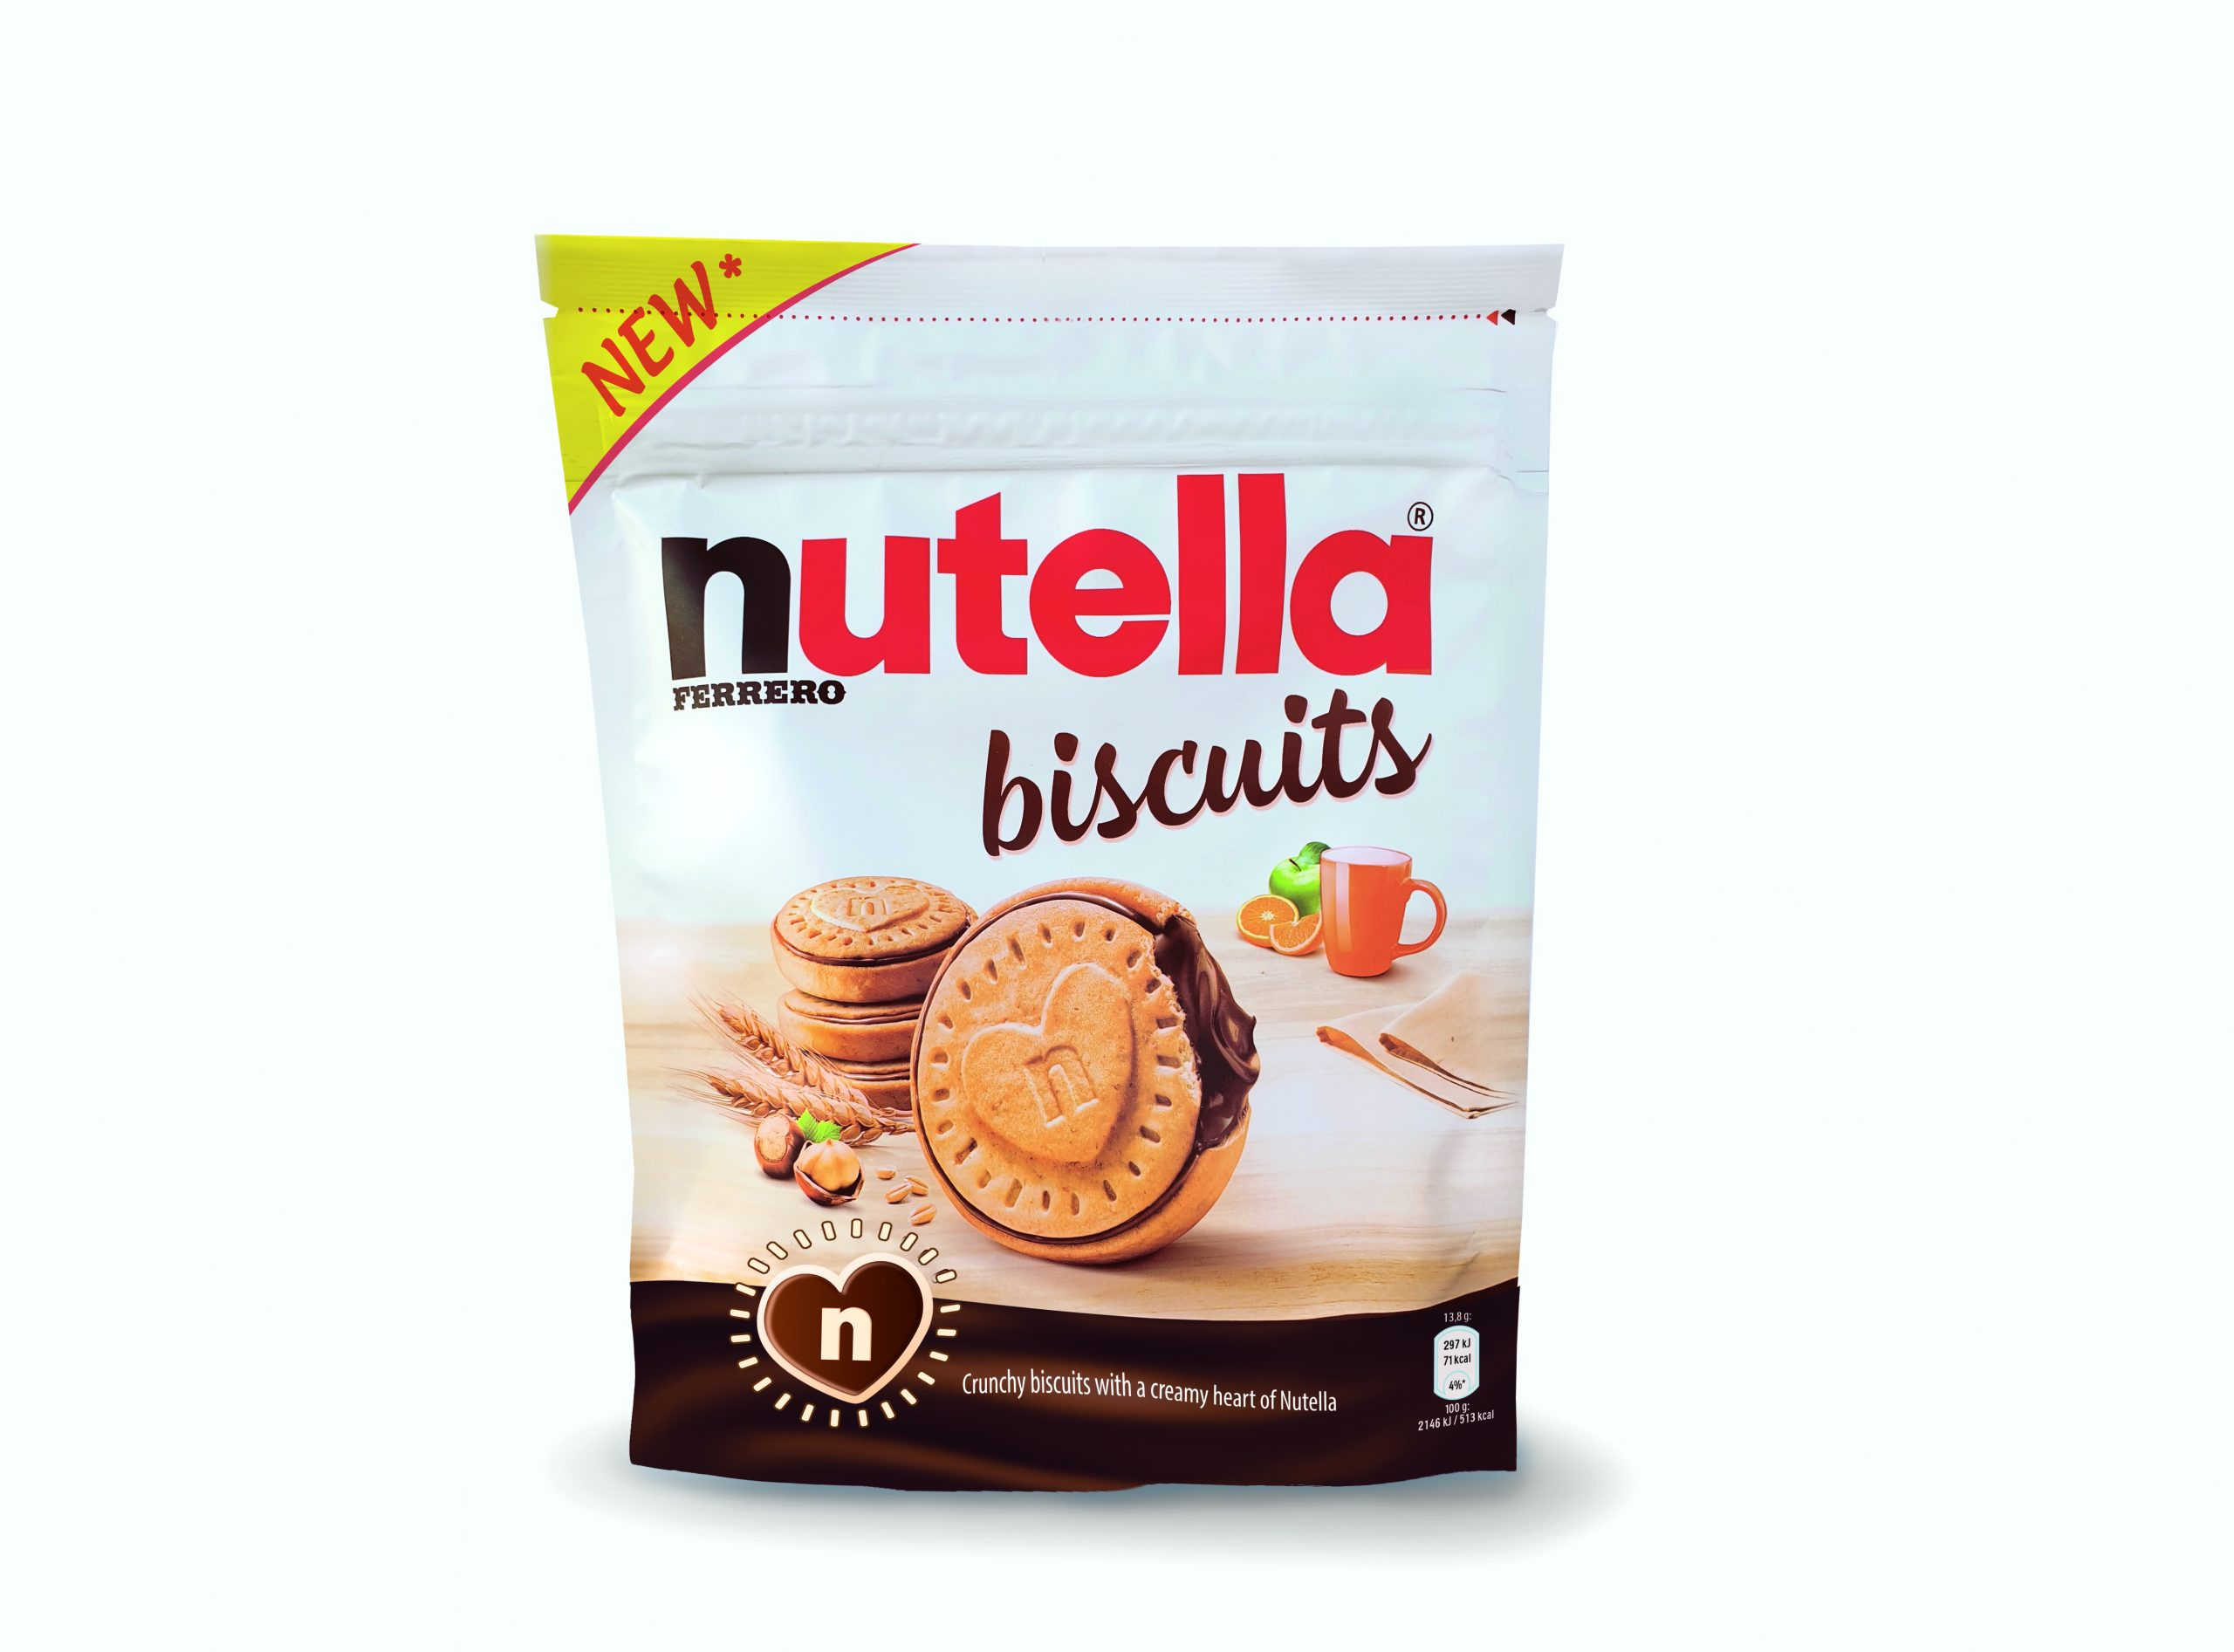 Nutella Launches New Biscuit Range